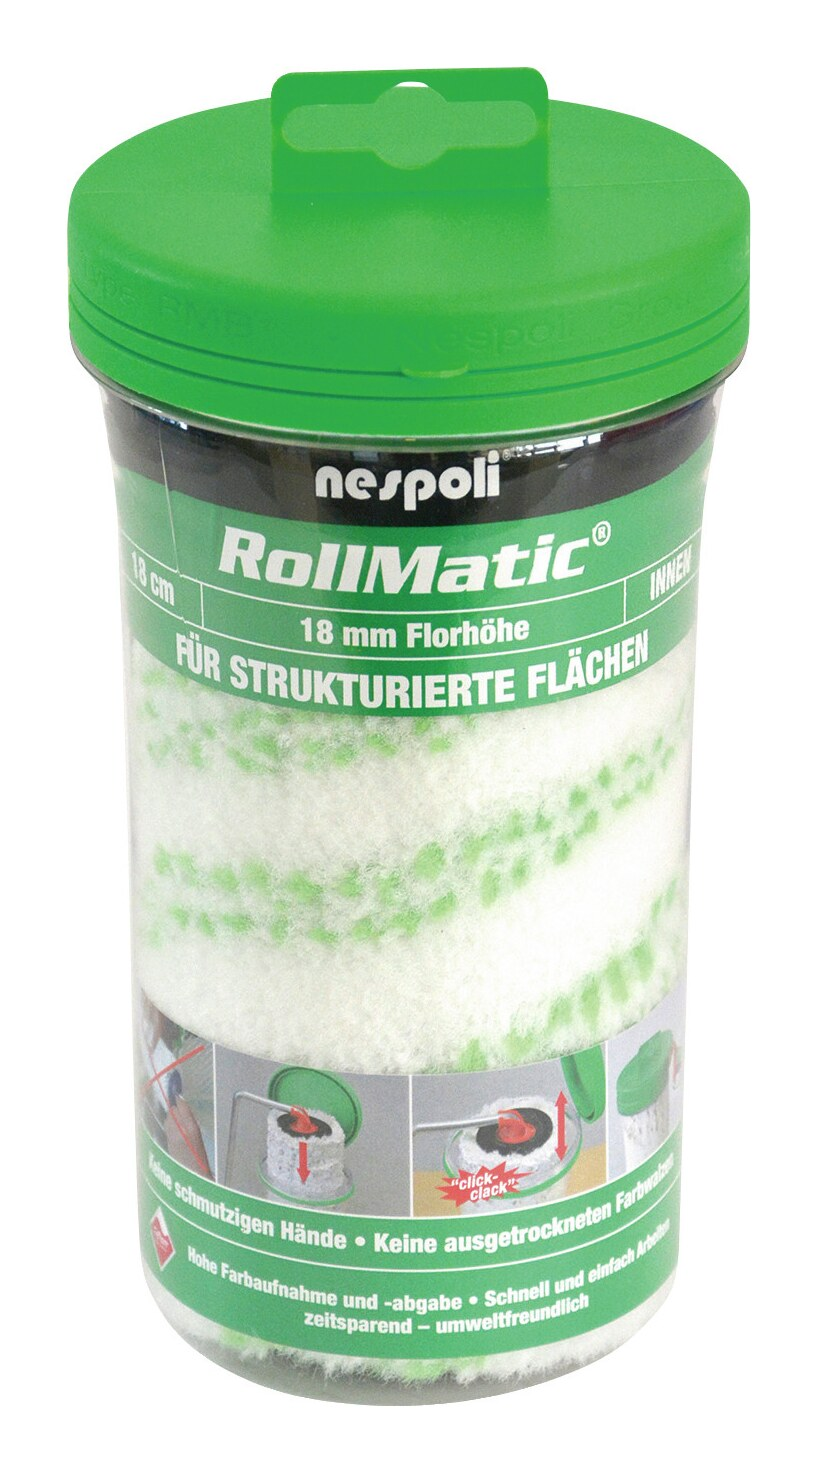 Farbwalze Rollmatic 18cm FH 18mm - 525610218 800